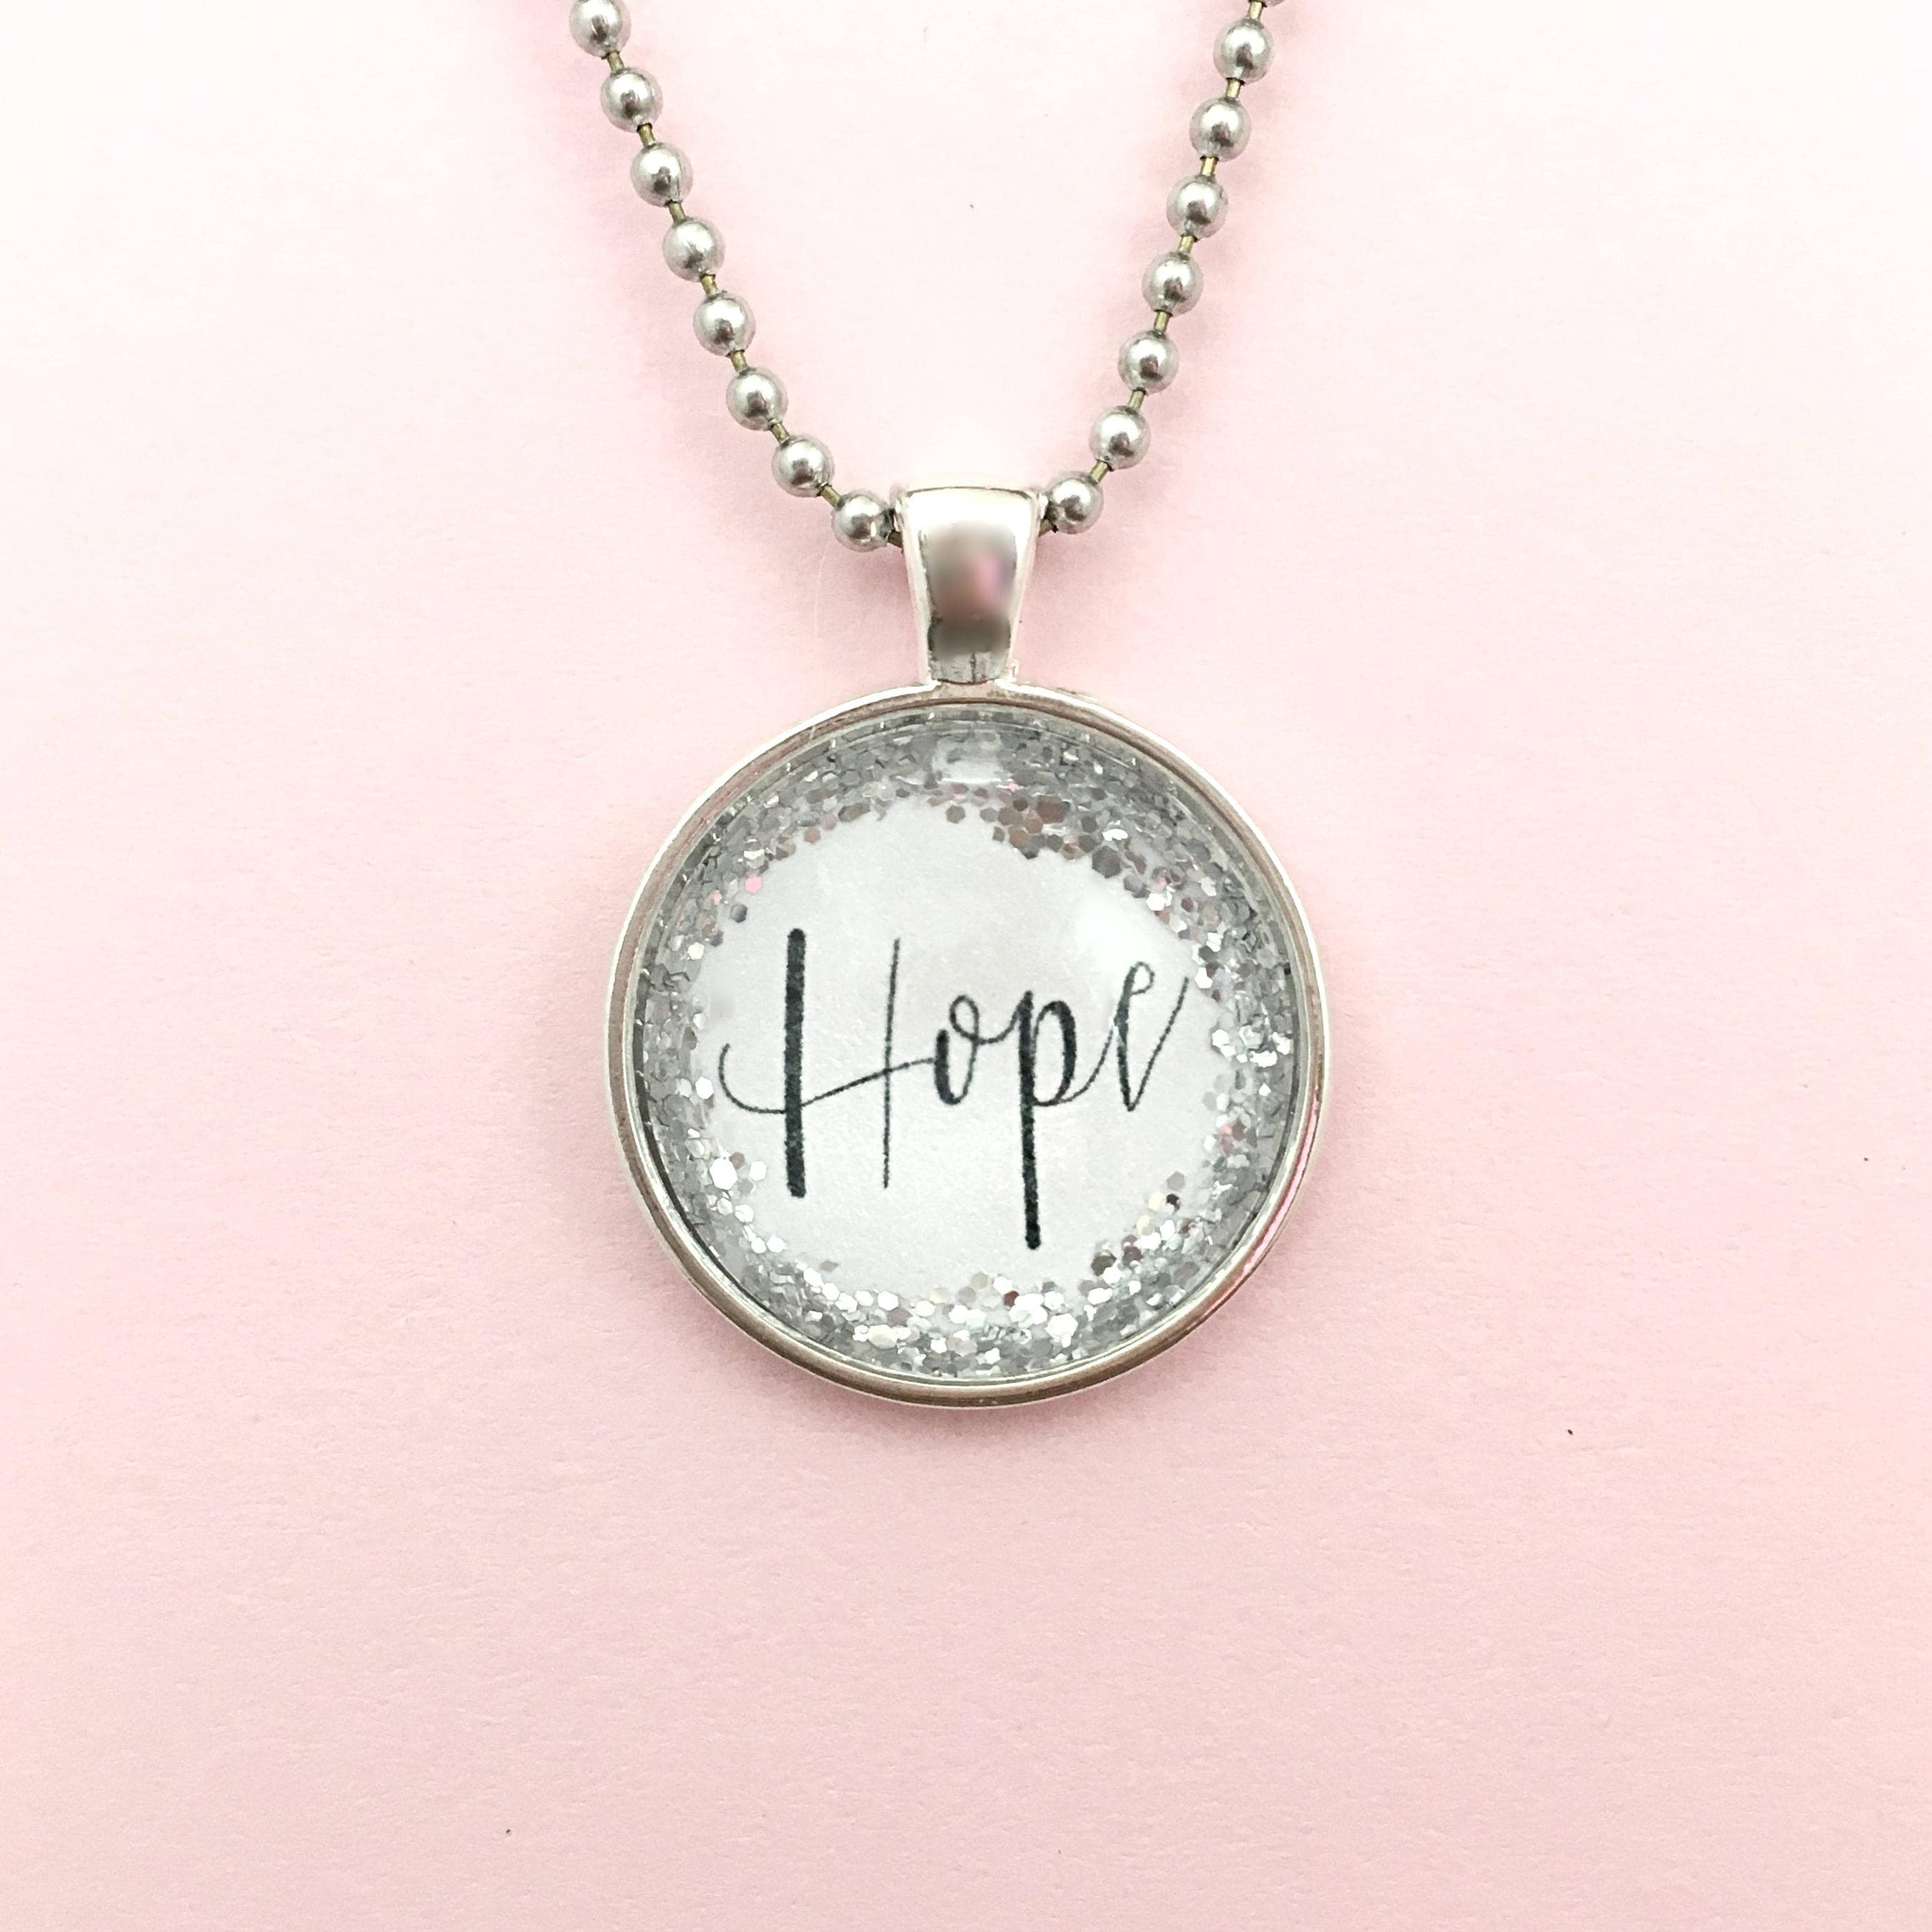 Hope round pendant or custom necklace quote necklace word hope round pendant or custom necklace quote necklace word necklace boho necklace glitter necklace personalized gift keyring aloadofball Image collections